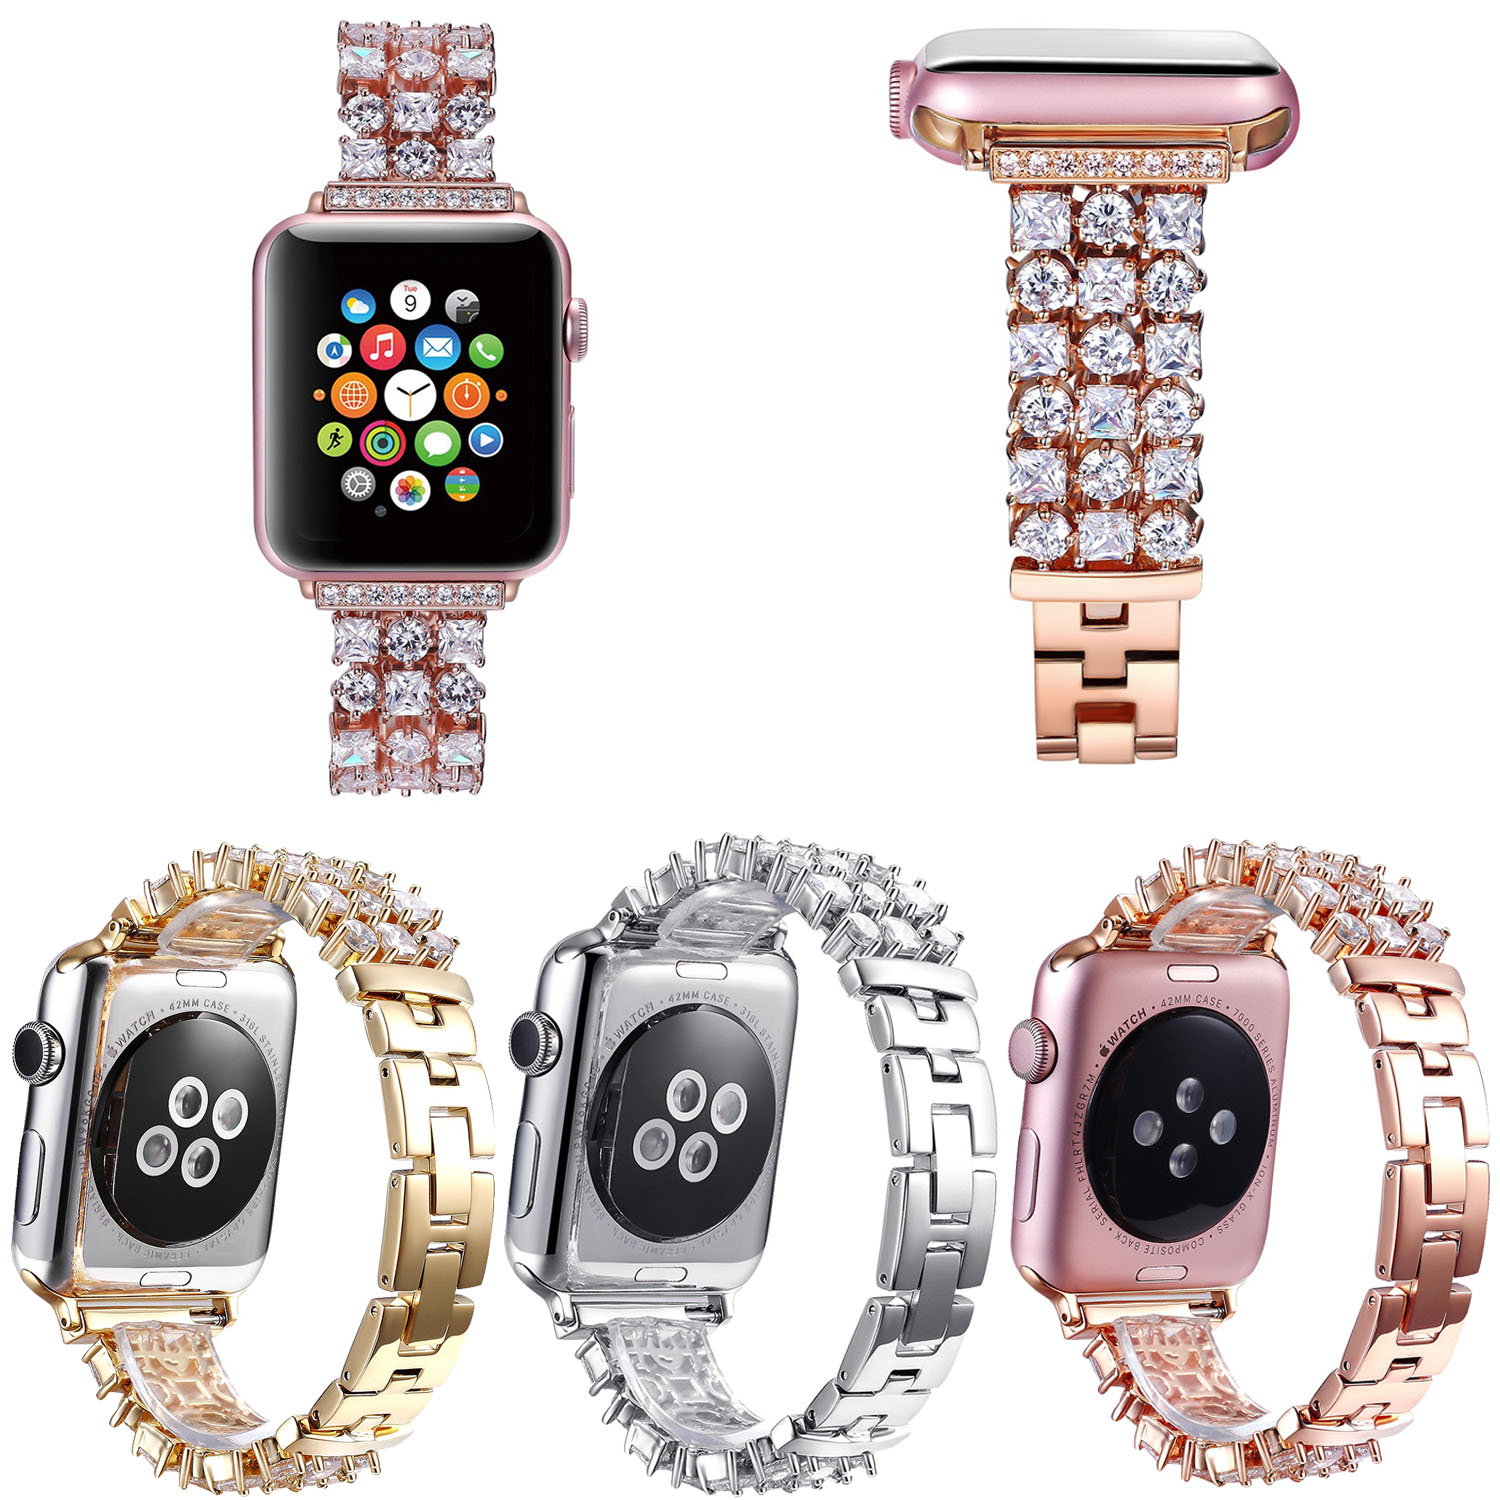 Luxury Bling Rhinestone Strap for Apple Watch Series 3 Band Stainless Steel Link Bracelet for iWatch 1/2 38mm 42mm Watchbands цена